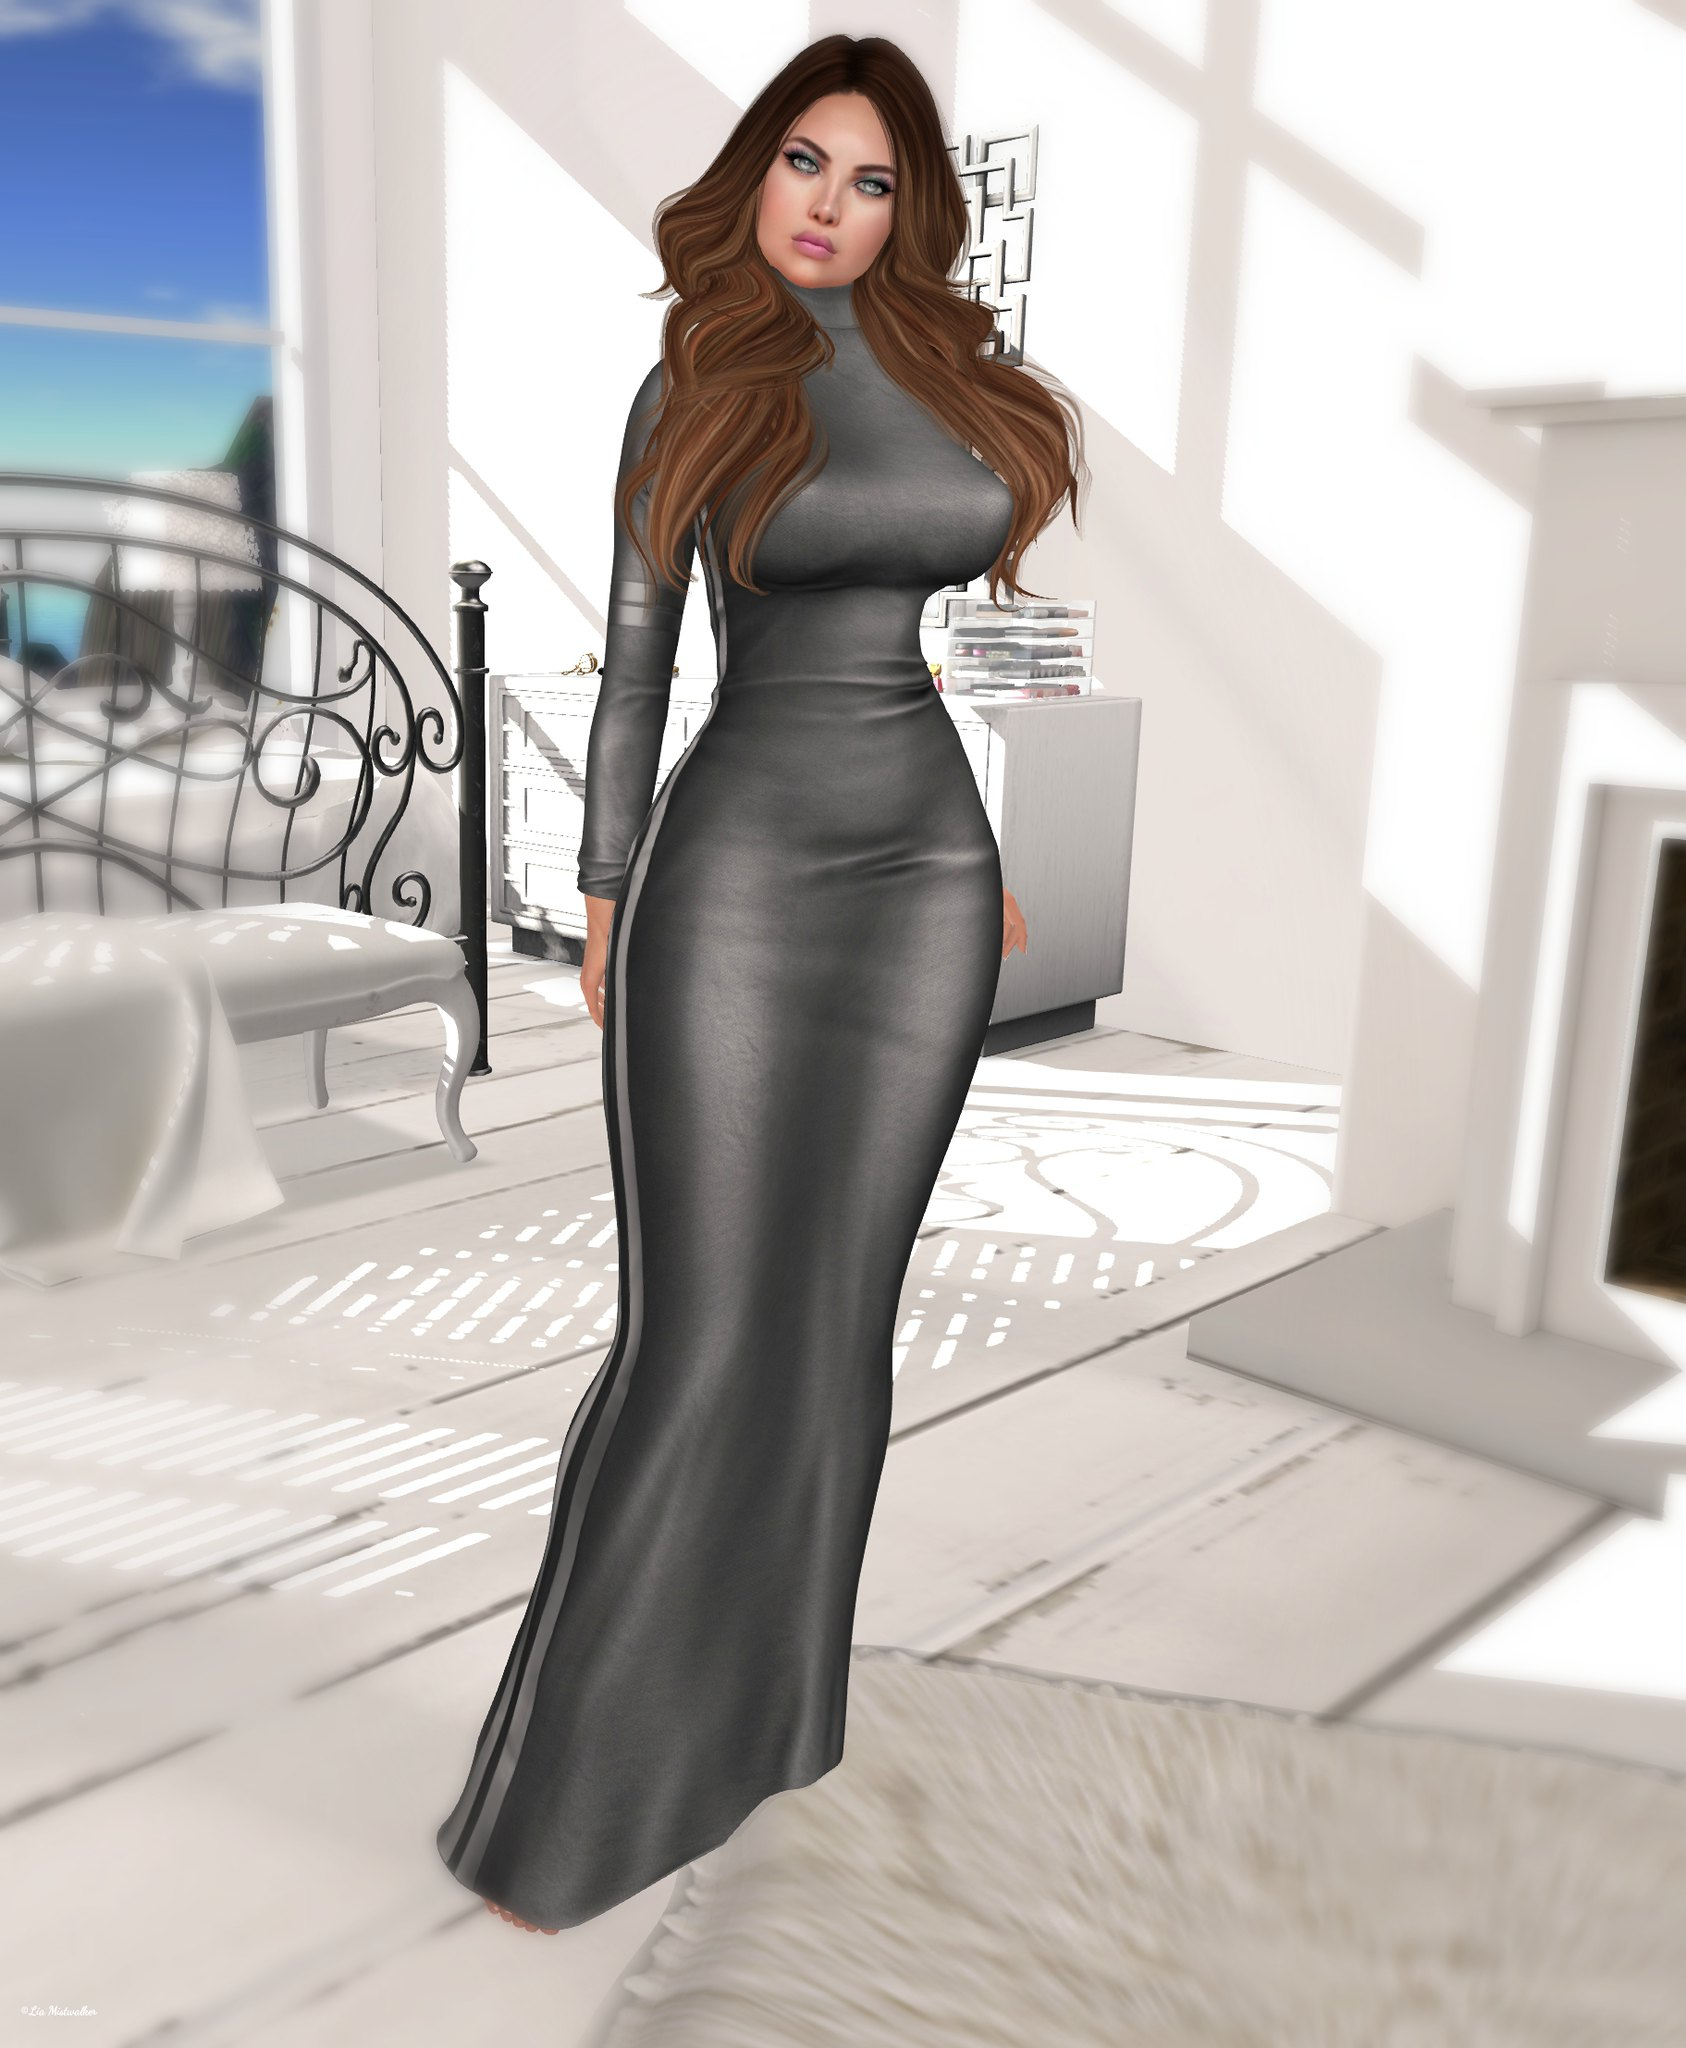 Fashion Therapy LOTD # 444